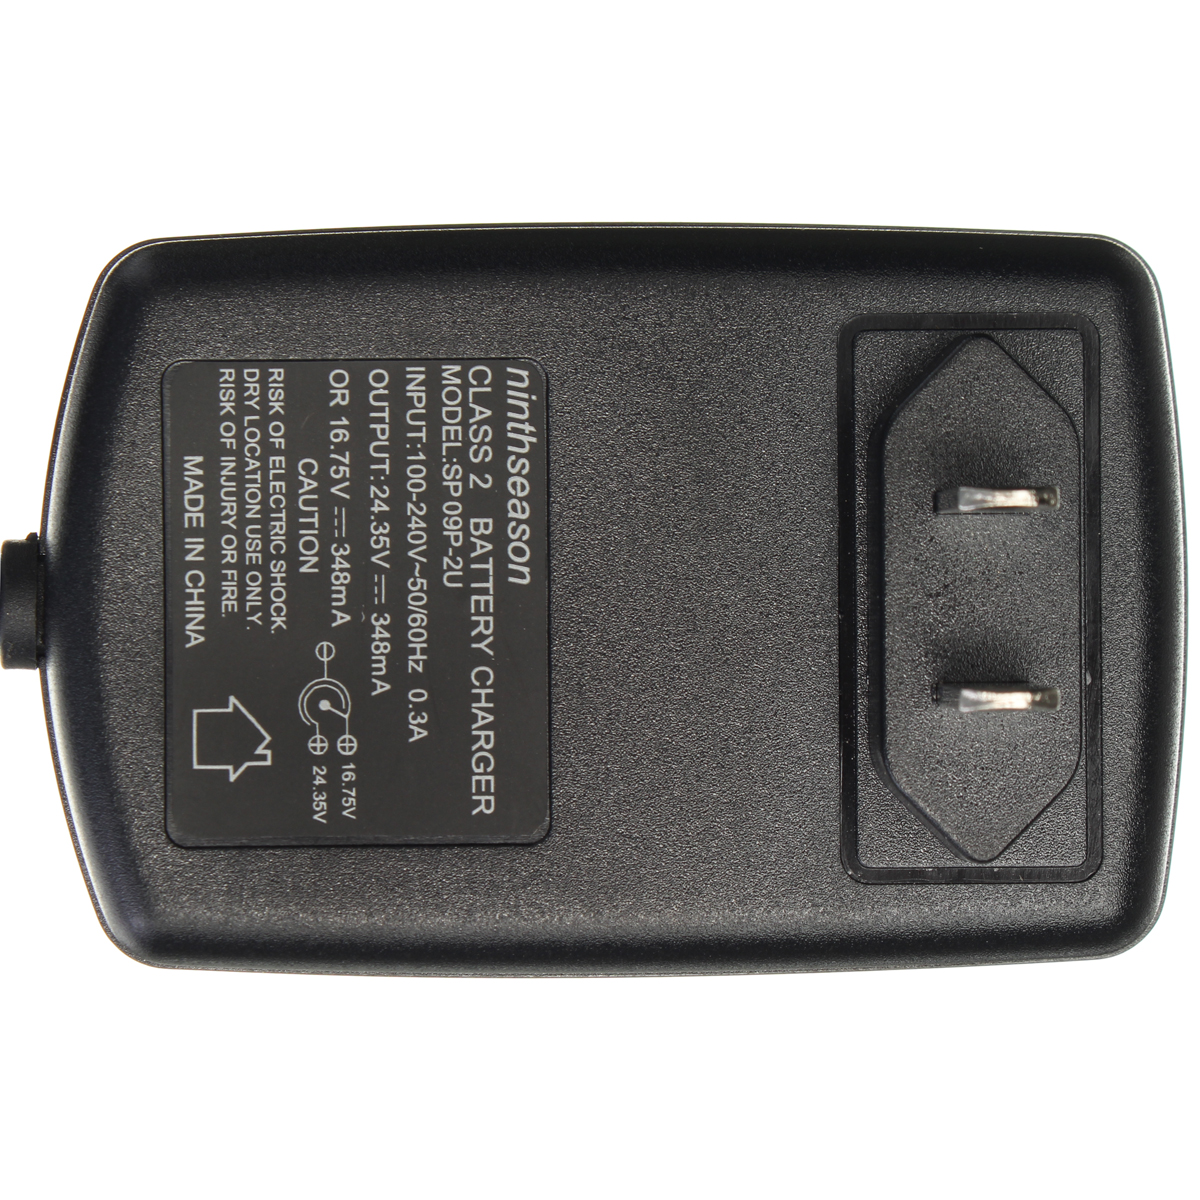 Cord Wall Battery Charger Adapter Transformer Power Supply For Dyson DC44 Vacuum Cleaners